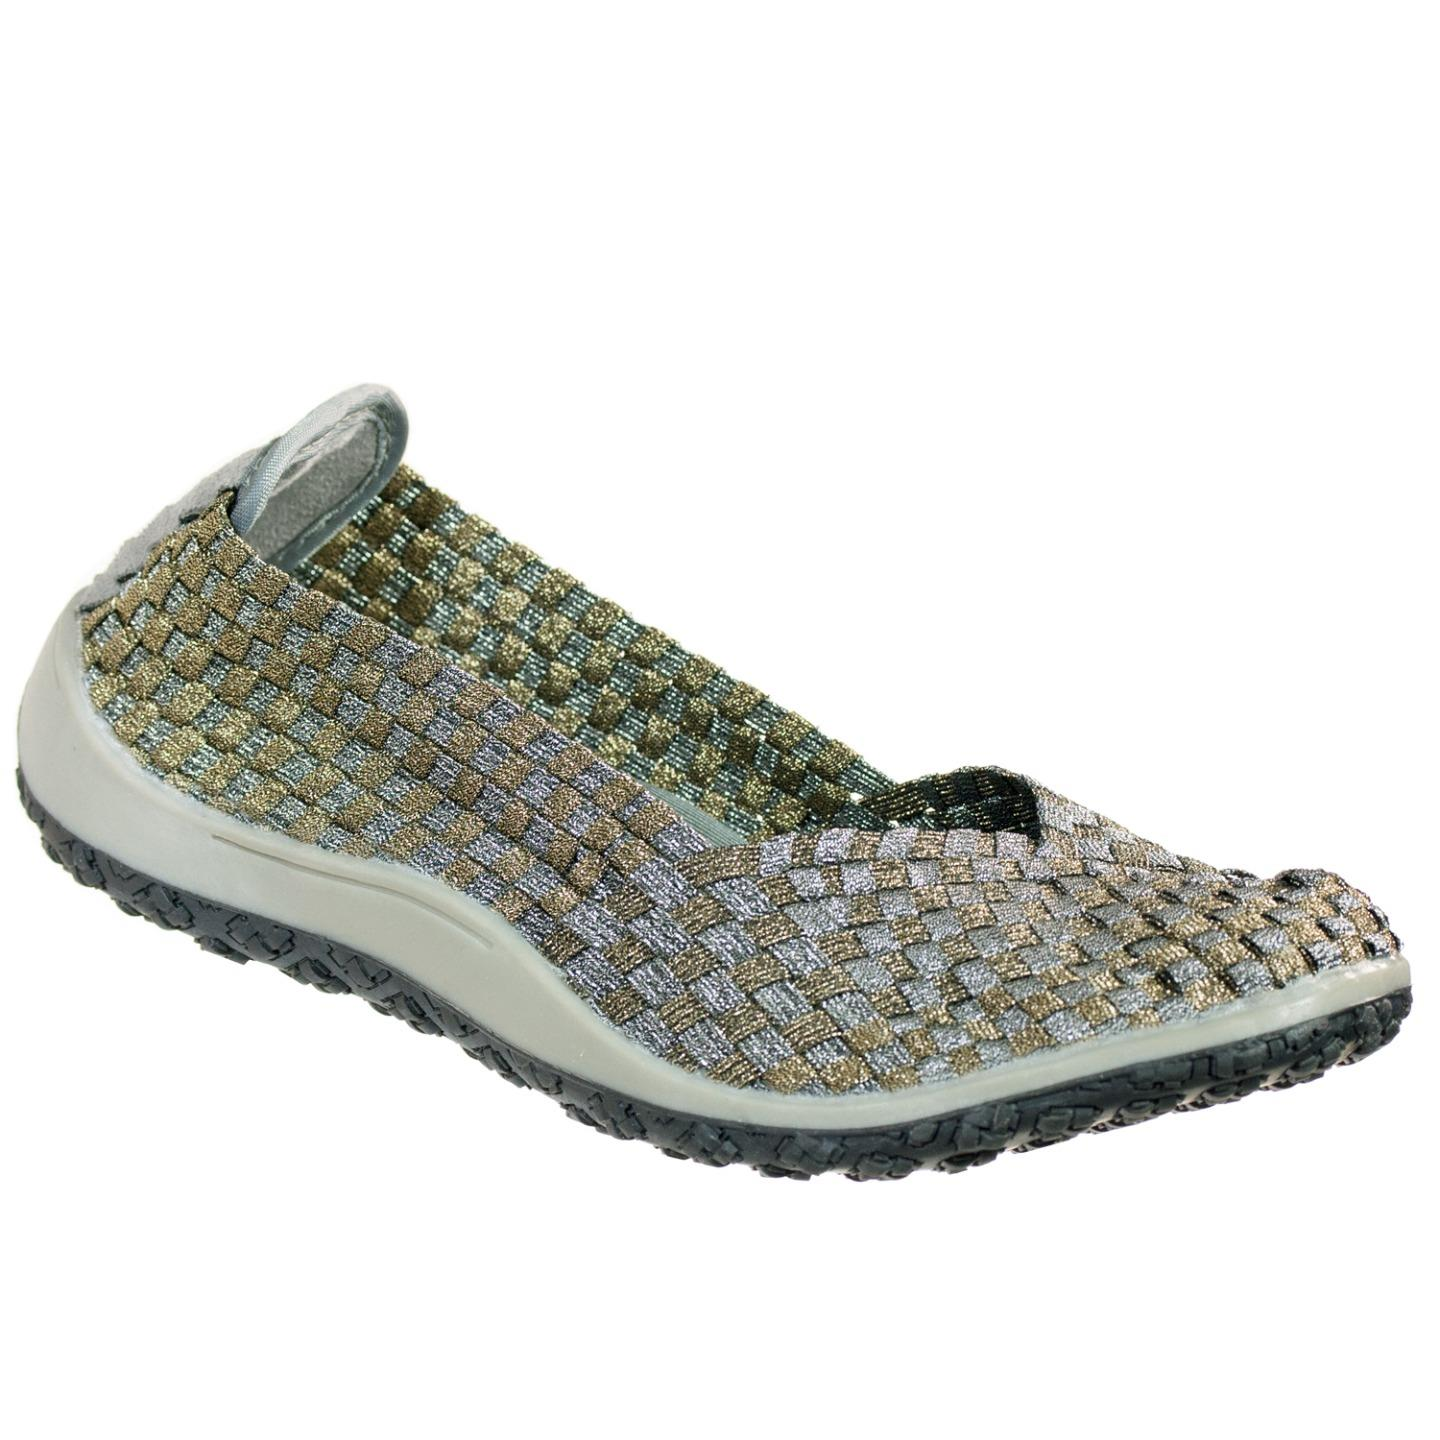 Zee Alexis Spice Womens Woven Slip On Shoes Pewter Bronze 10 M